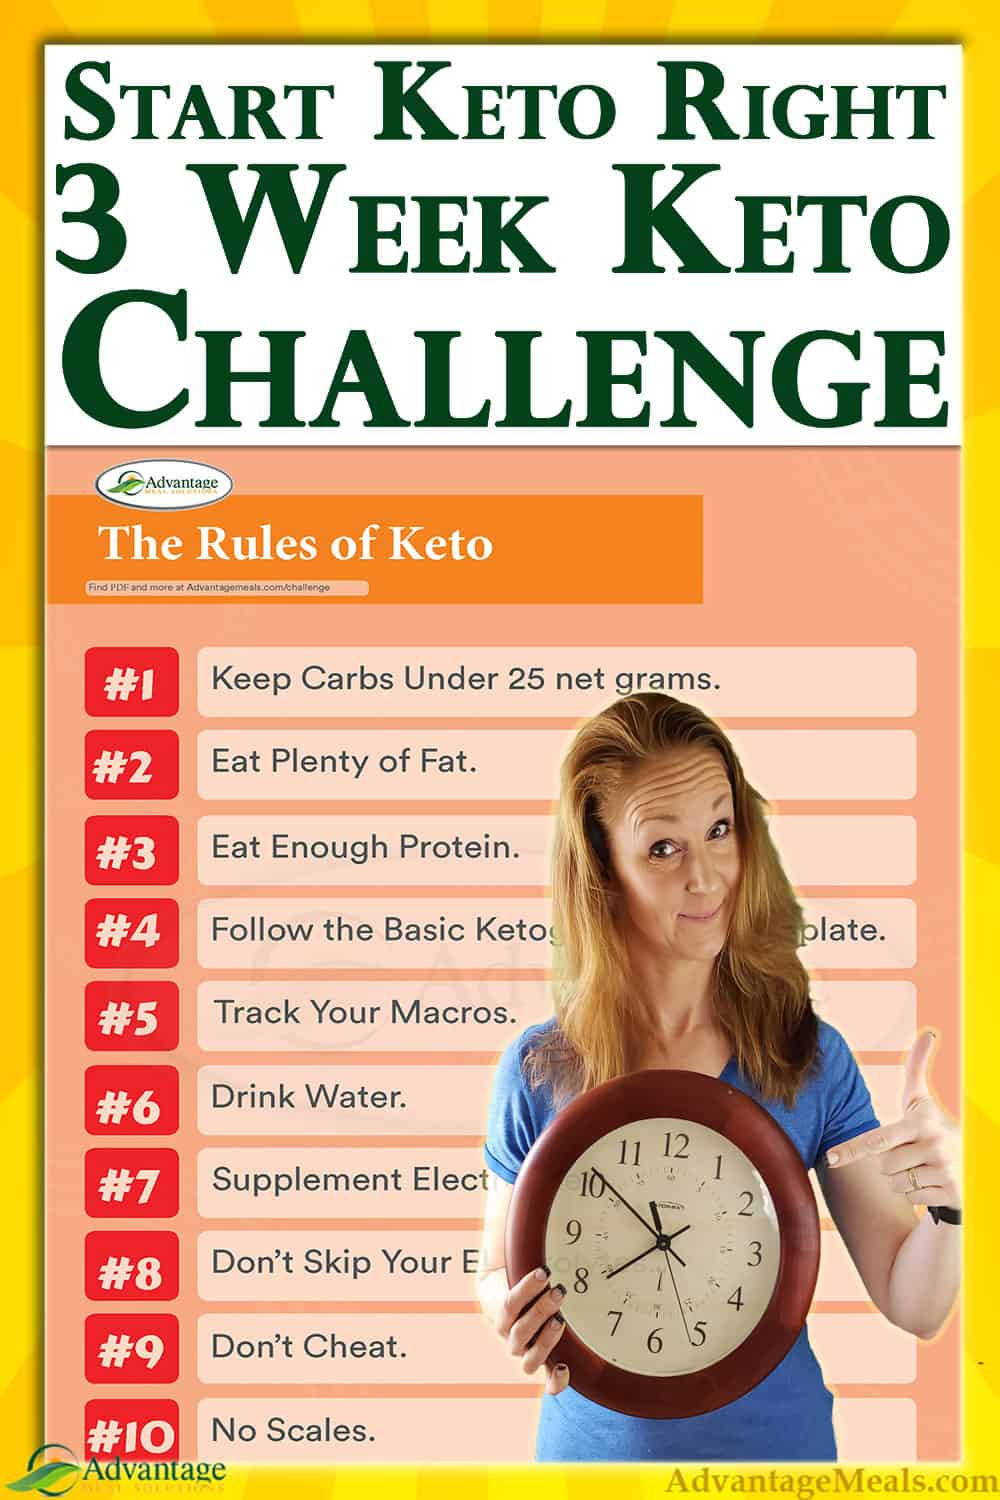 Beginning a Ketogenic Diet doesn\'t have to be complex or confusing. Keto starting a keto keto diet simple by joining my committed keto community in this shared keto journey. Together we will lose weight fast. This weight-loss support group can make all the difference. ~ Angela of @AdvantageMeals #MealPlan #dietPlan